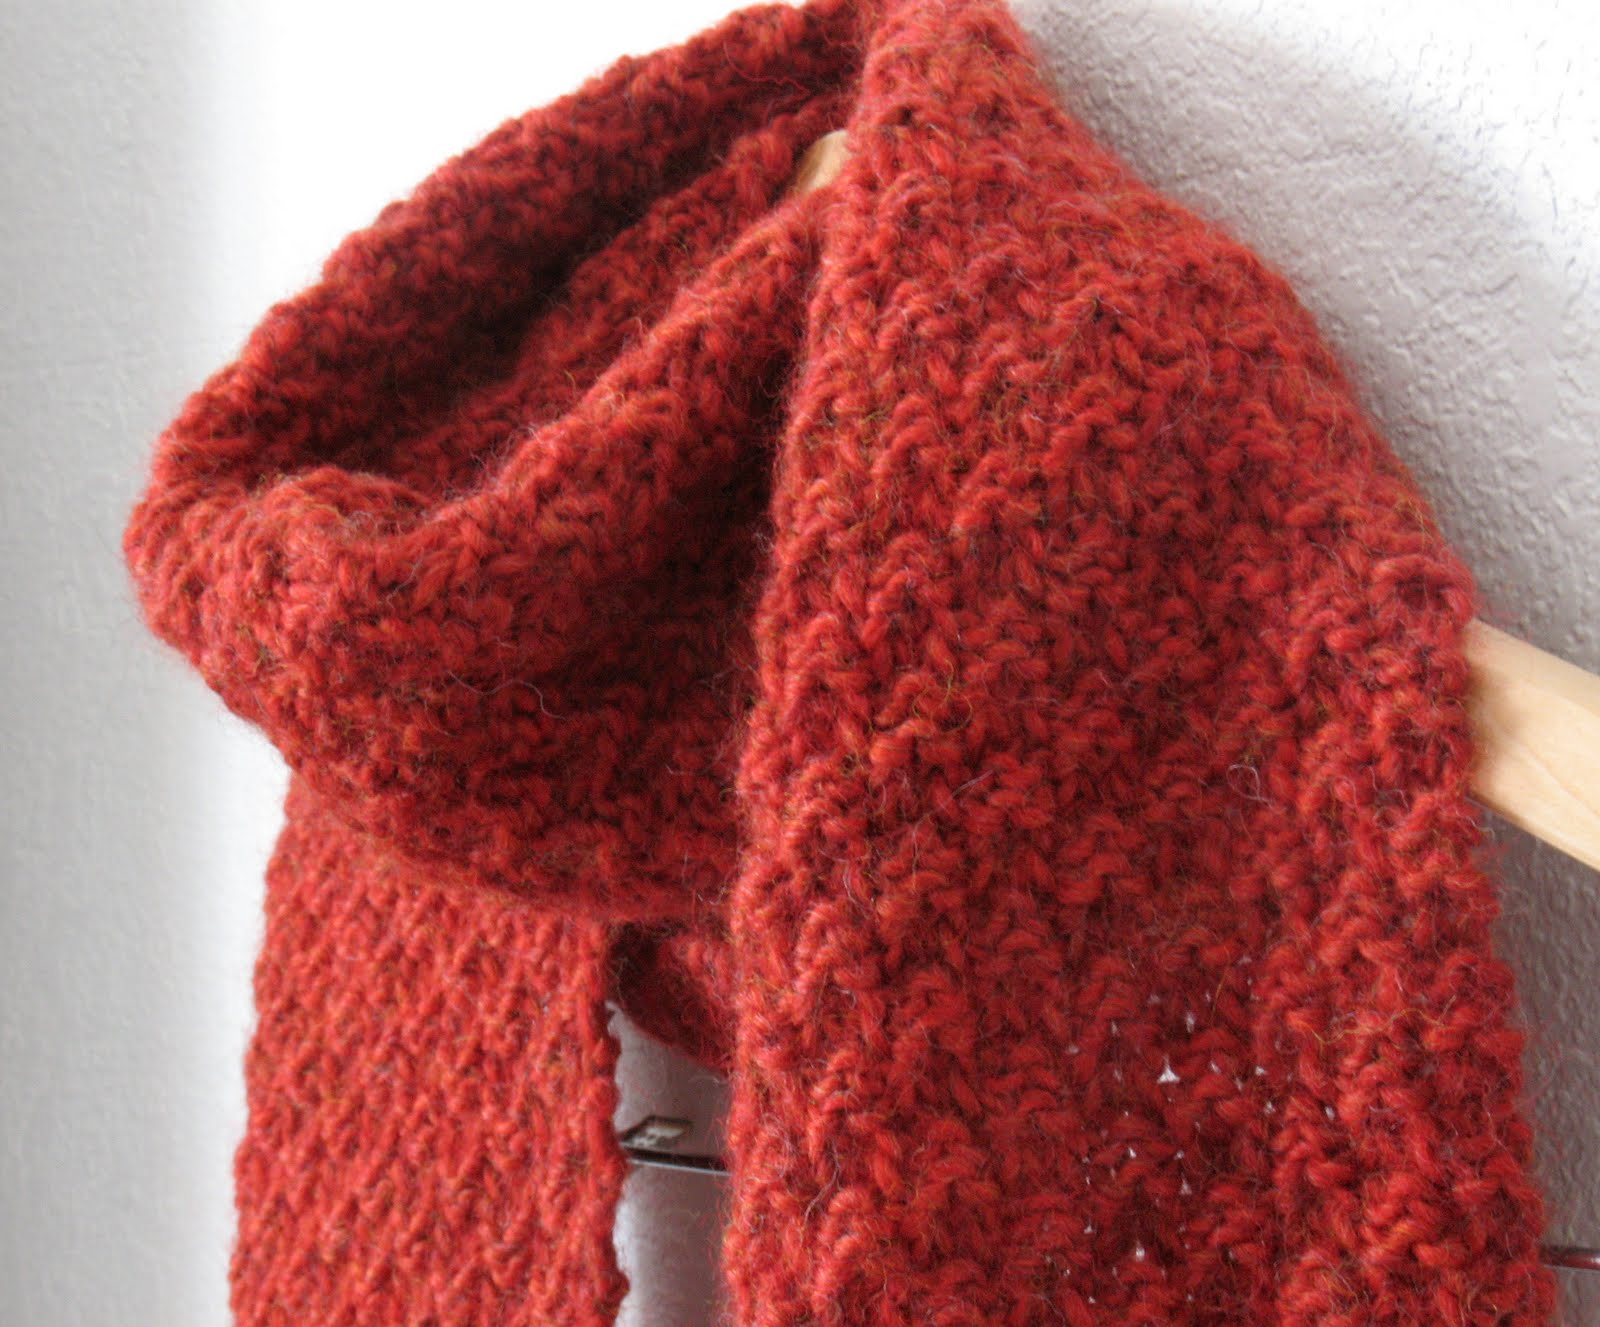 Knitting Patterns For Scarfs : knit, too!: Red Scarf Project + a pattern!